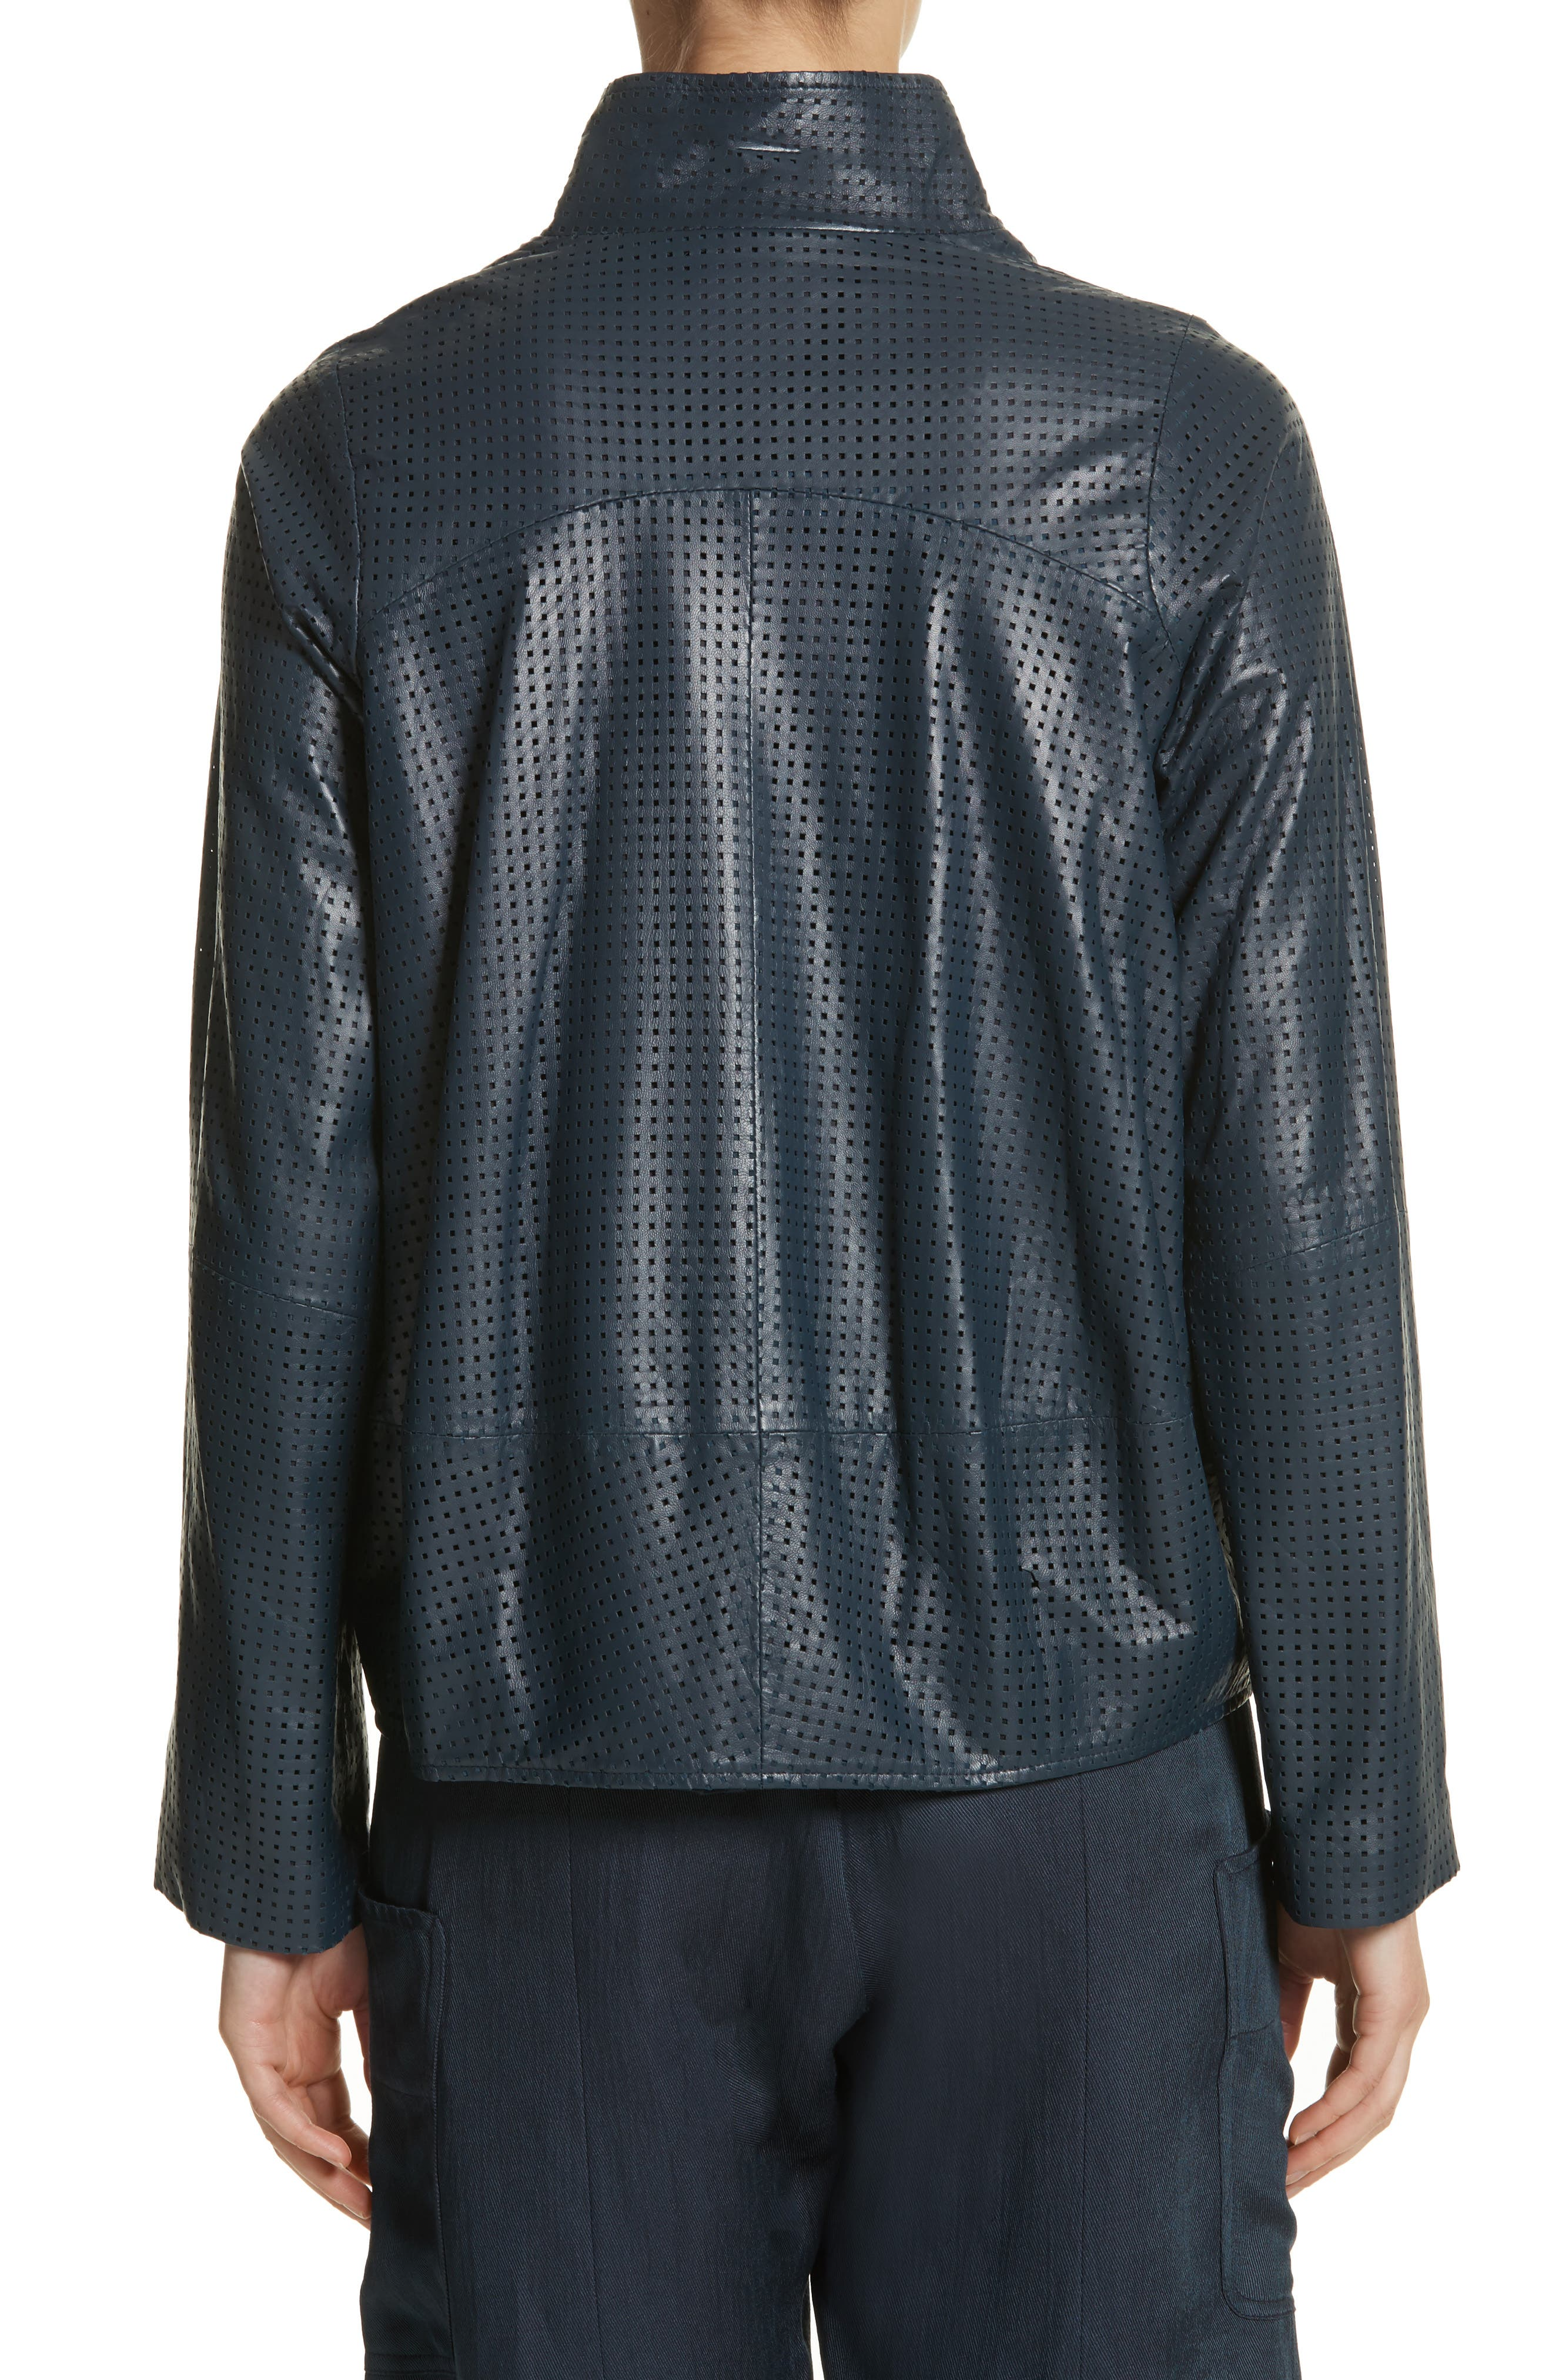 Perforated Nappa Leather Jacket,                             Alternate thumbnail 2, color,                             Ink Jet